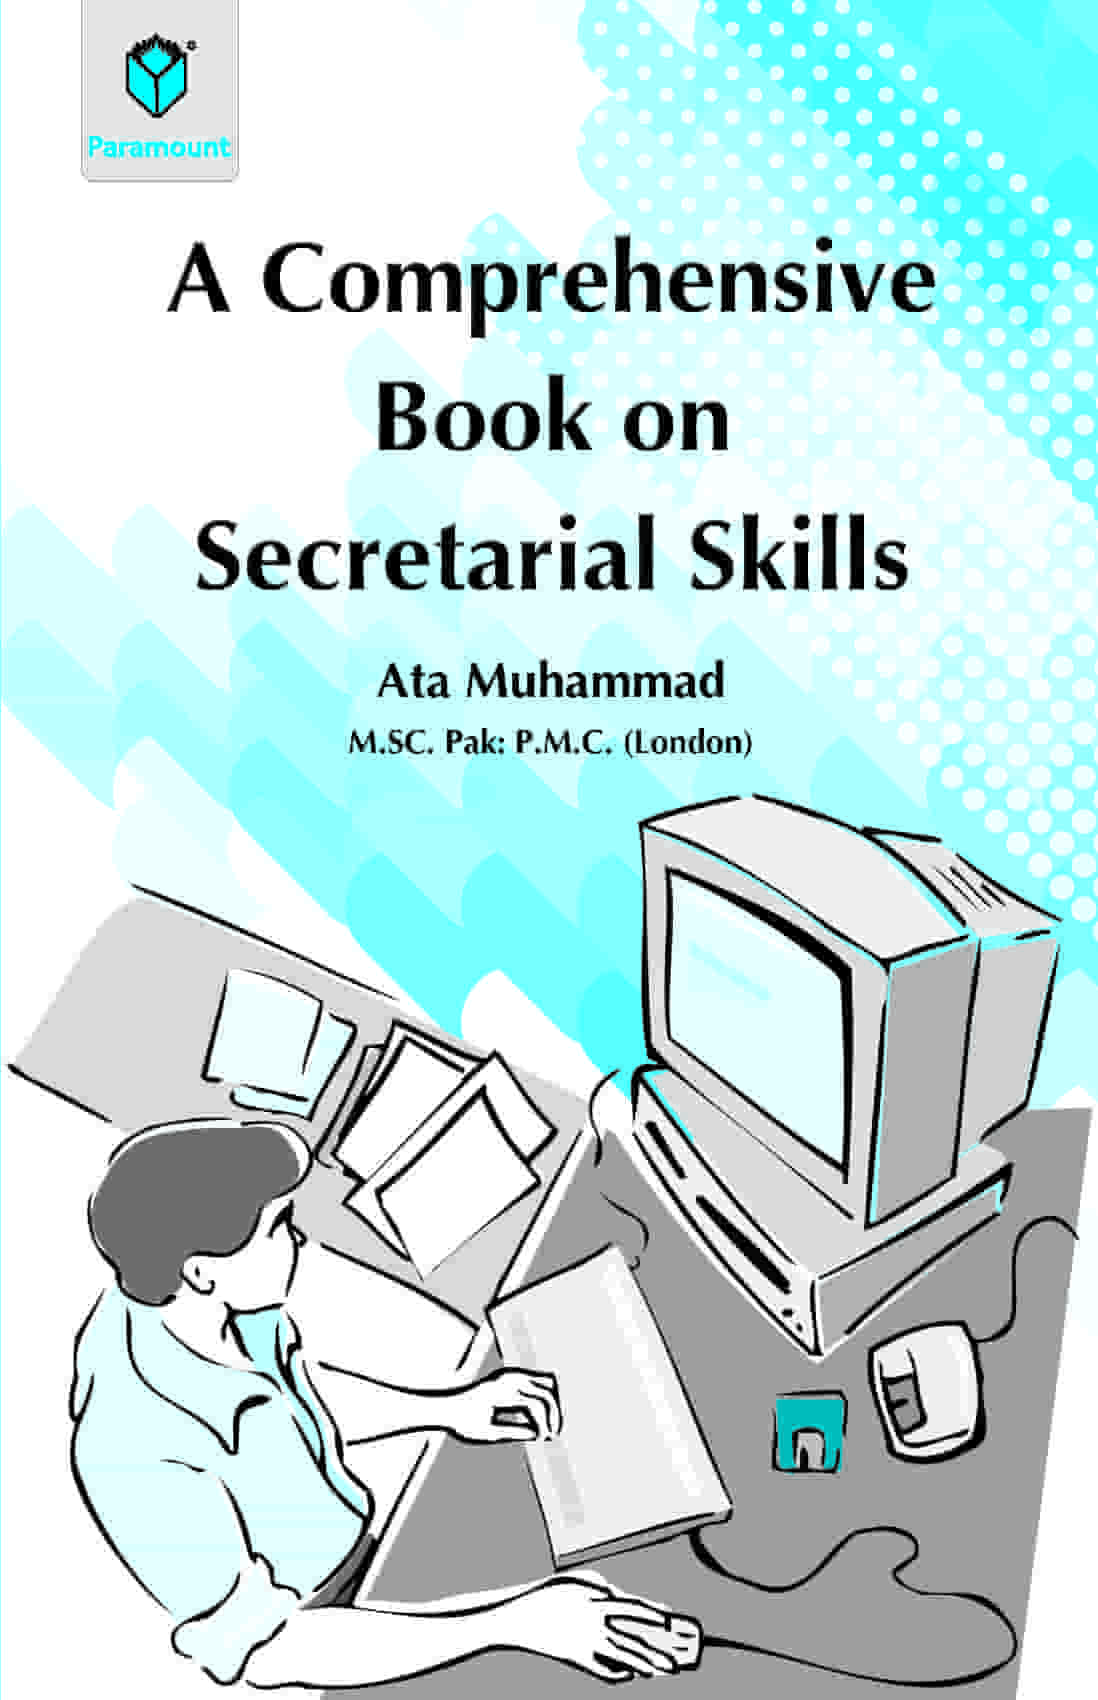 A Comprehensive Book on Secretarial Skills